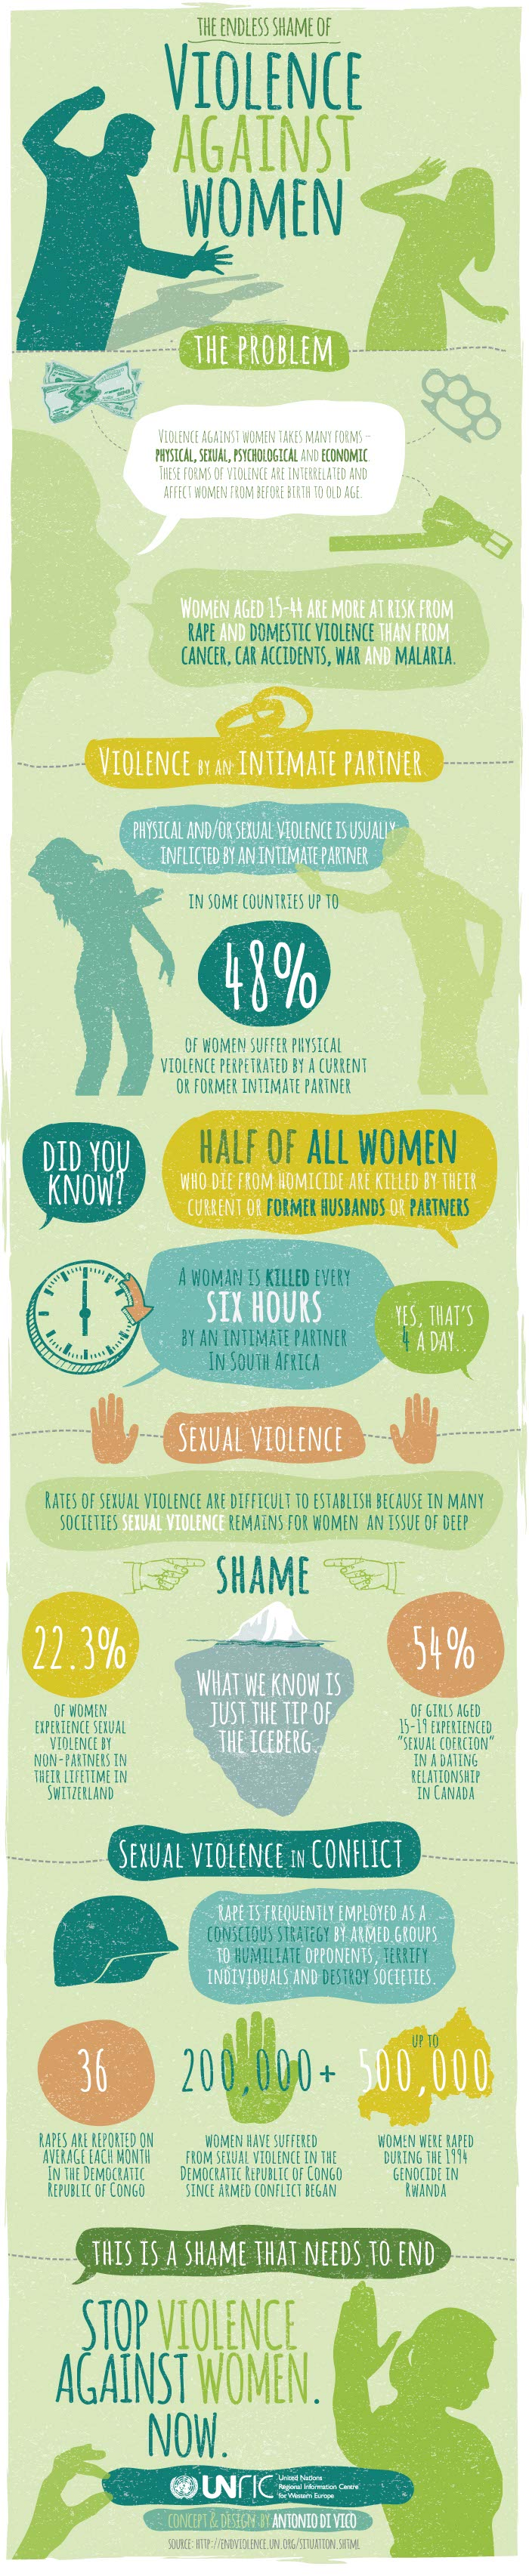 Violence Against Women Statistics-Infographic